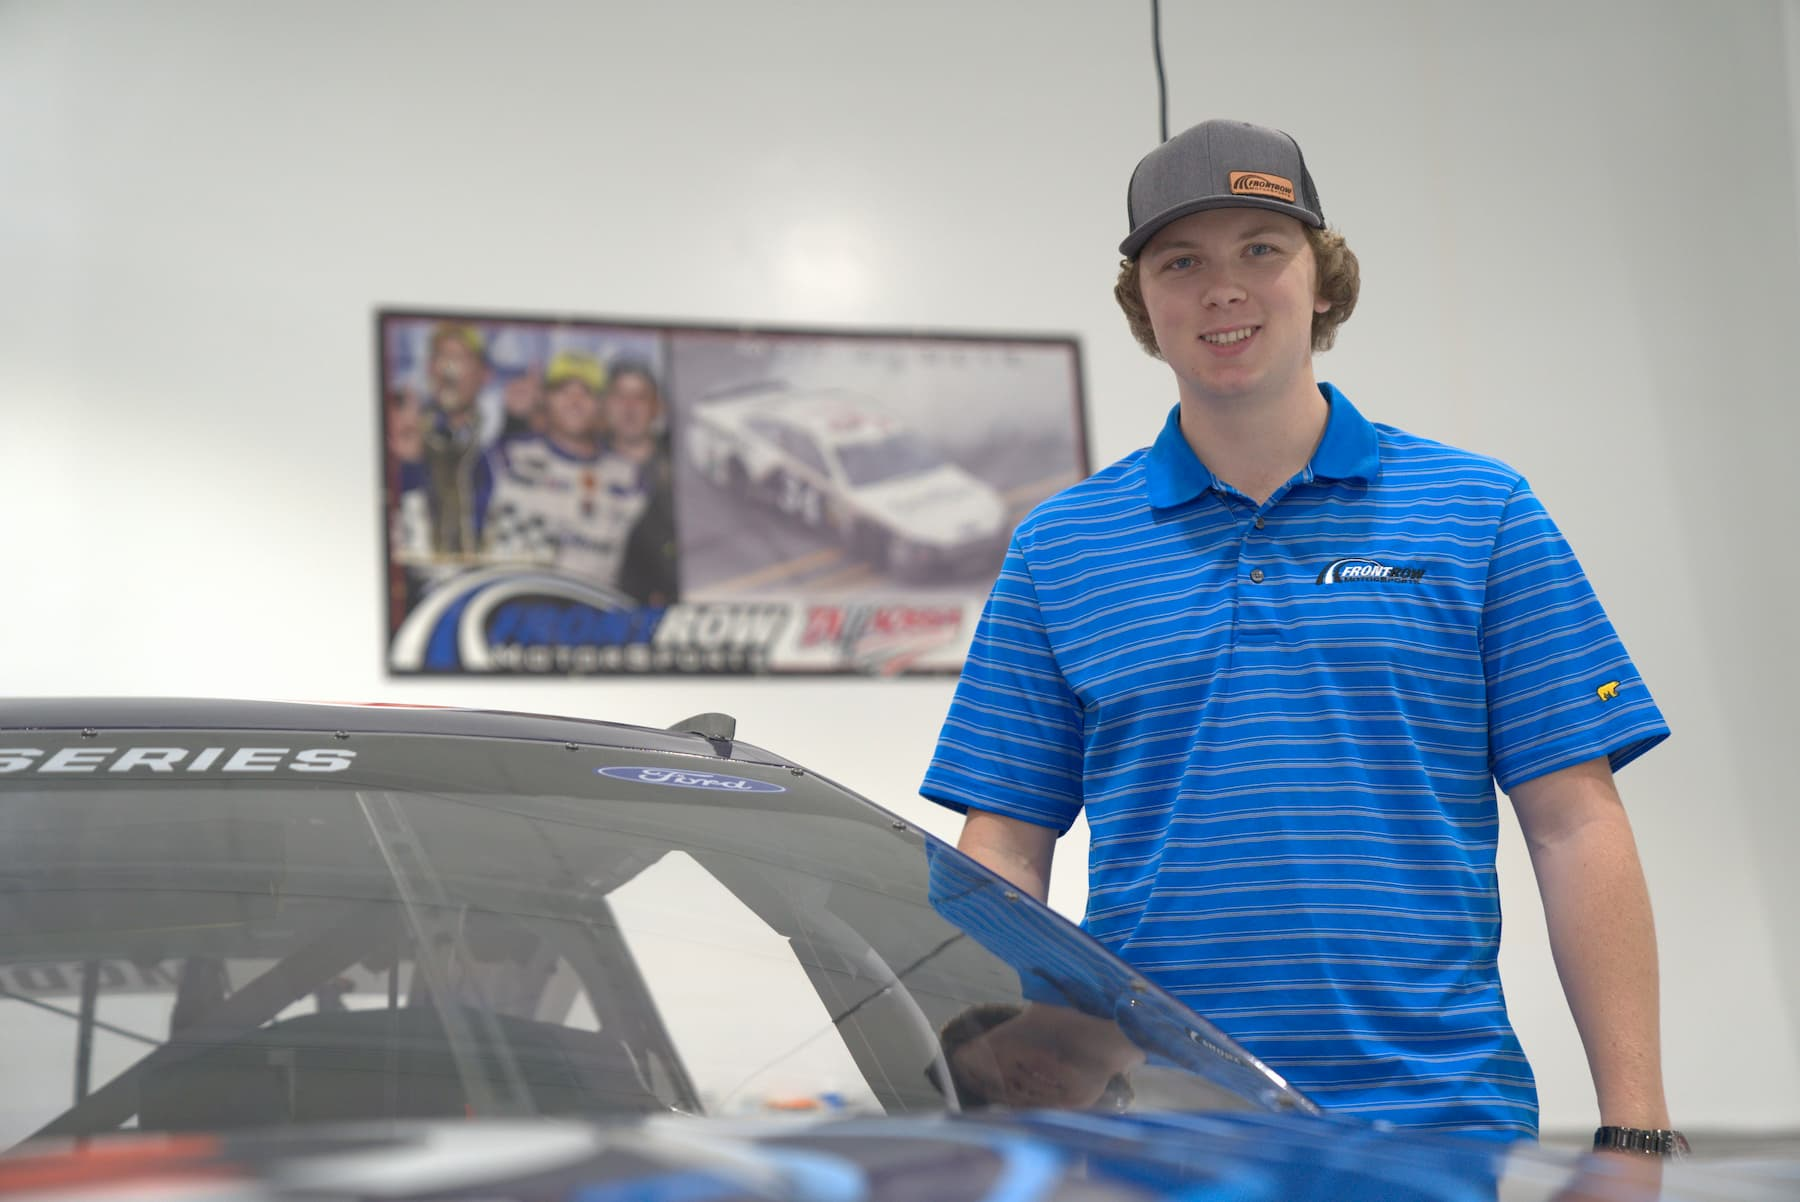 Mac MacLeod poses next to a NASCAR Cup Series racecar at Front Row Motorsports. Photo courtesy of LakeSide Media.